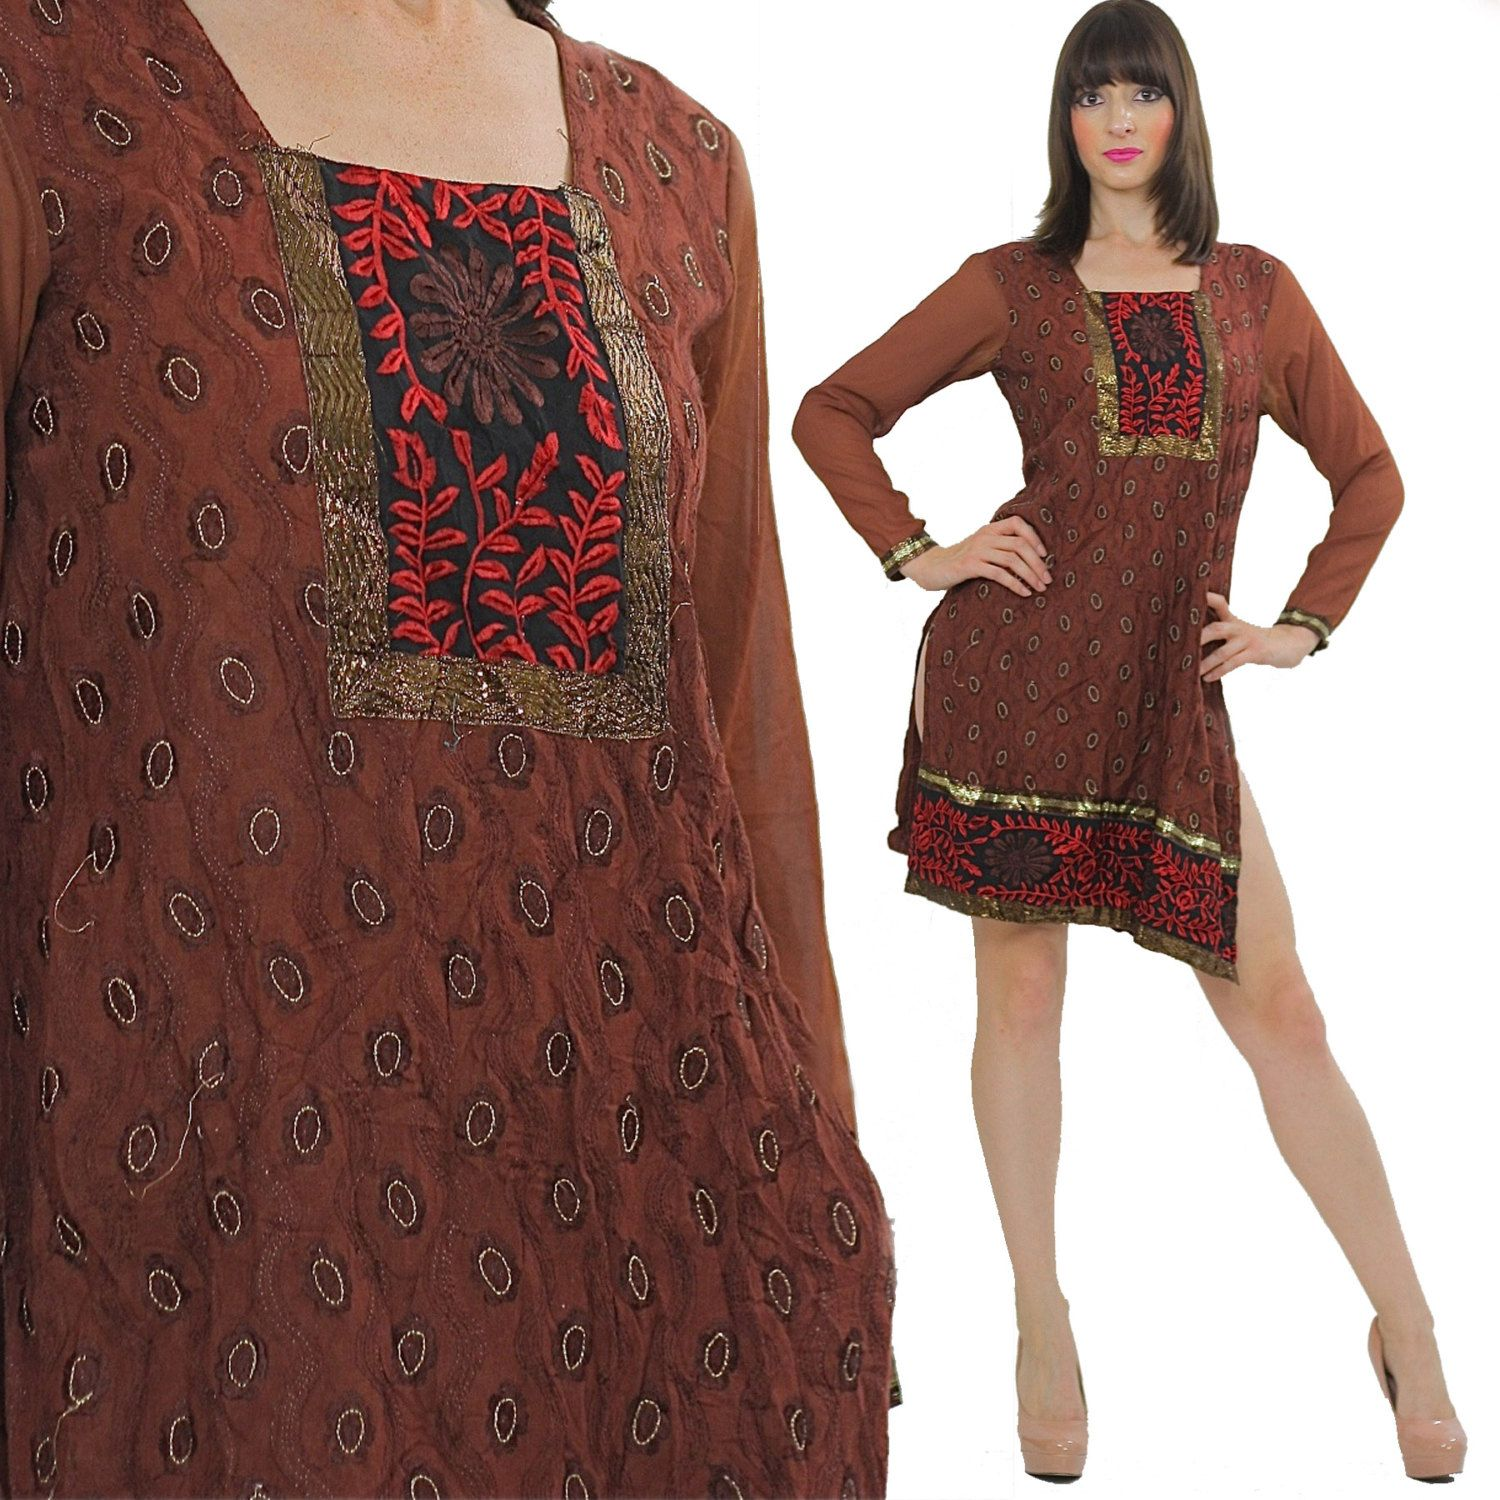 Embroidered dress sheer floral metallic vintage s india ethnic